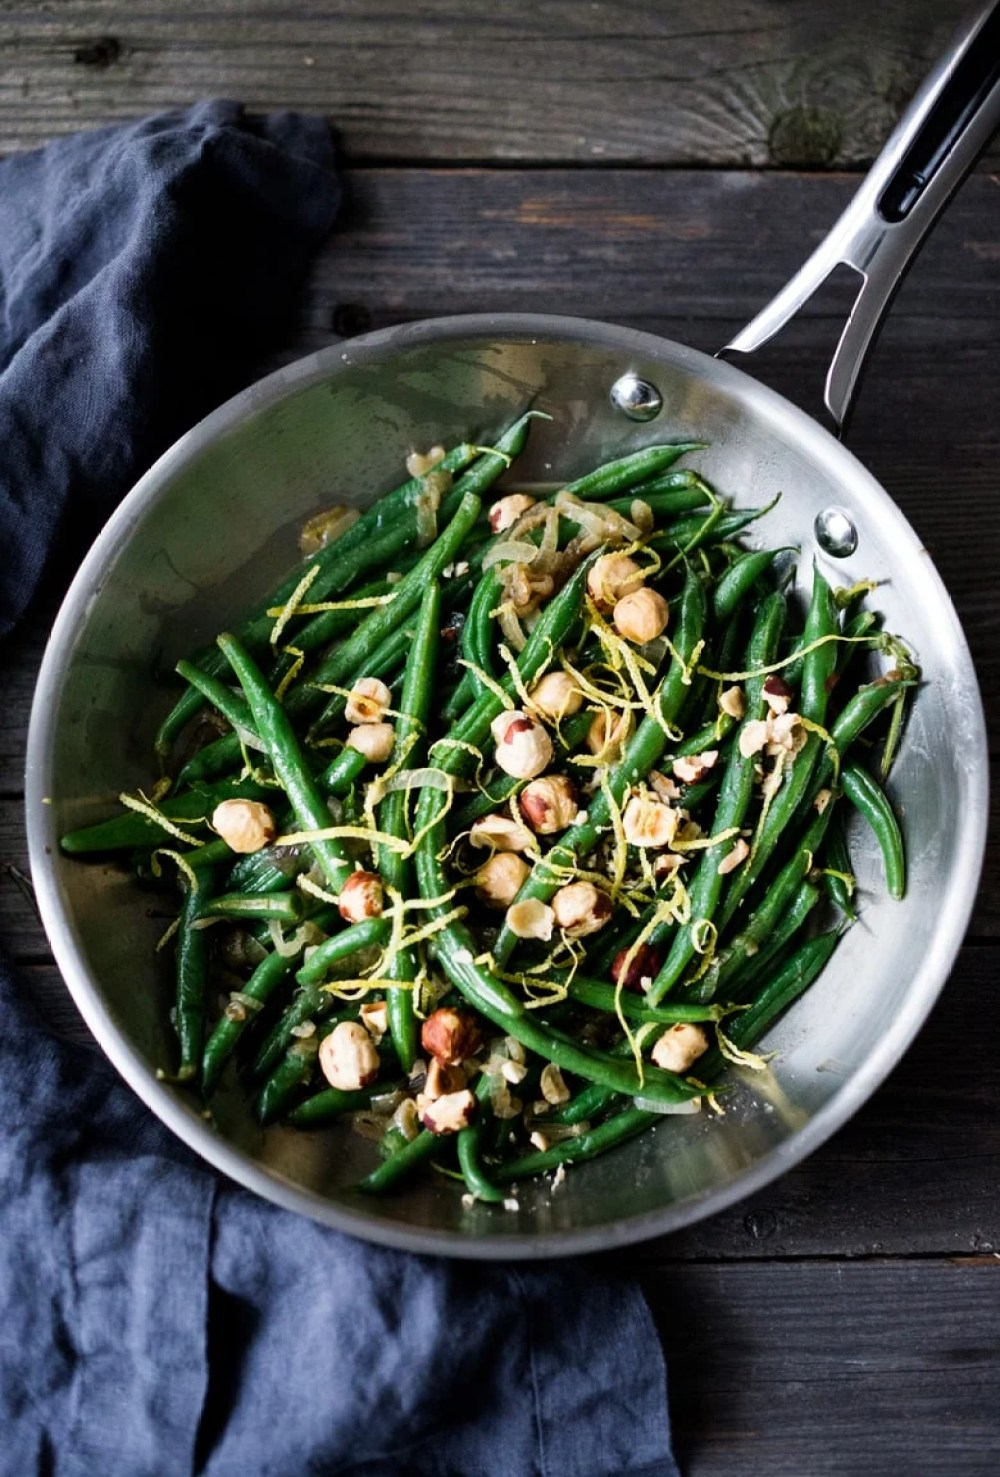 Hazelnut Green Beans with lemon zest & truffle oil